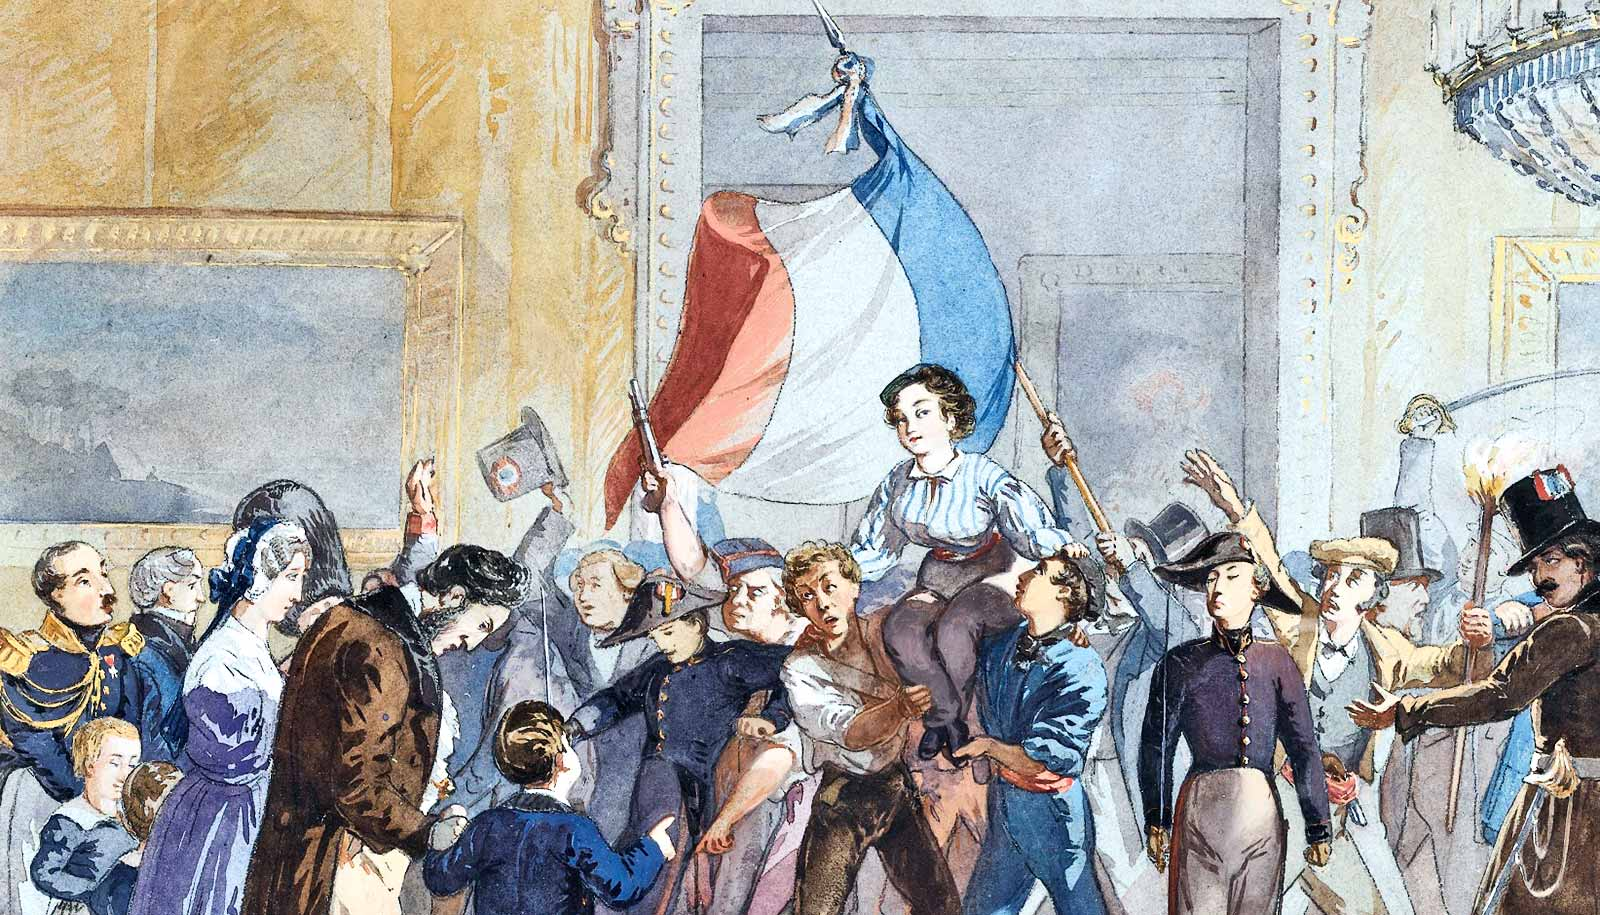 The French Revolution 17891799 was a period of ideological political and social upheaval in the political history of France and Europe as a whole during which